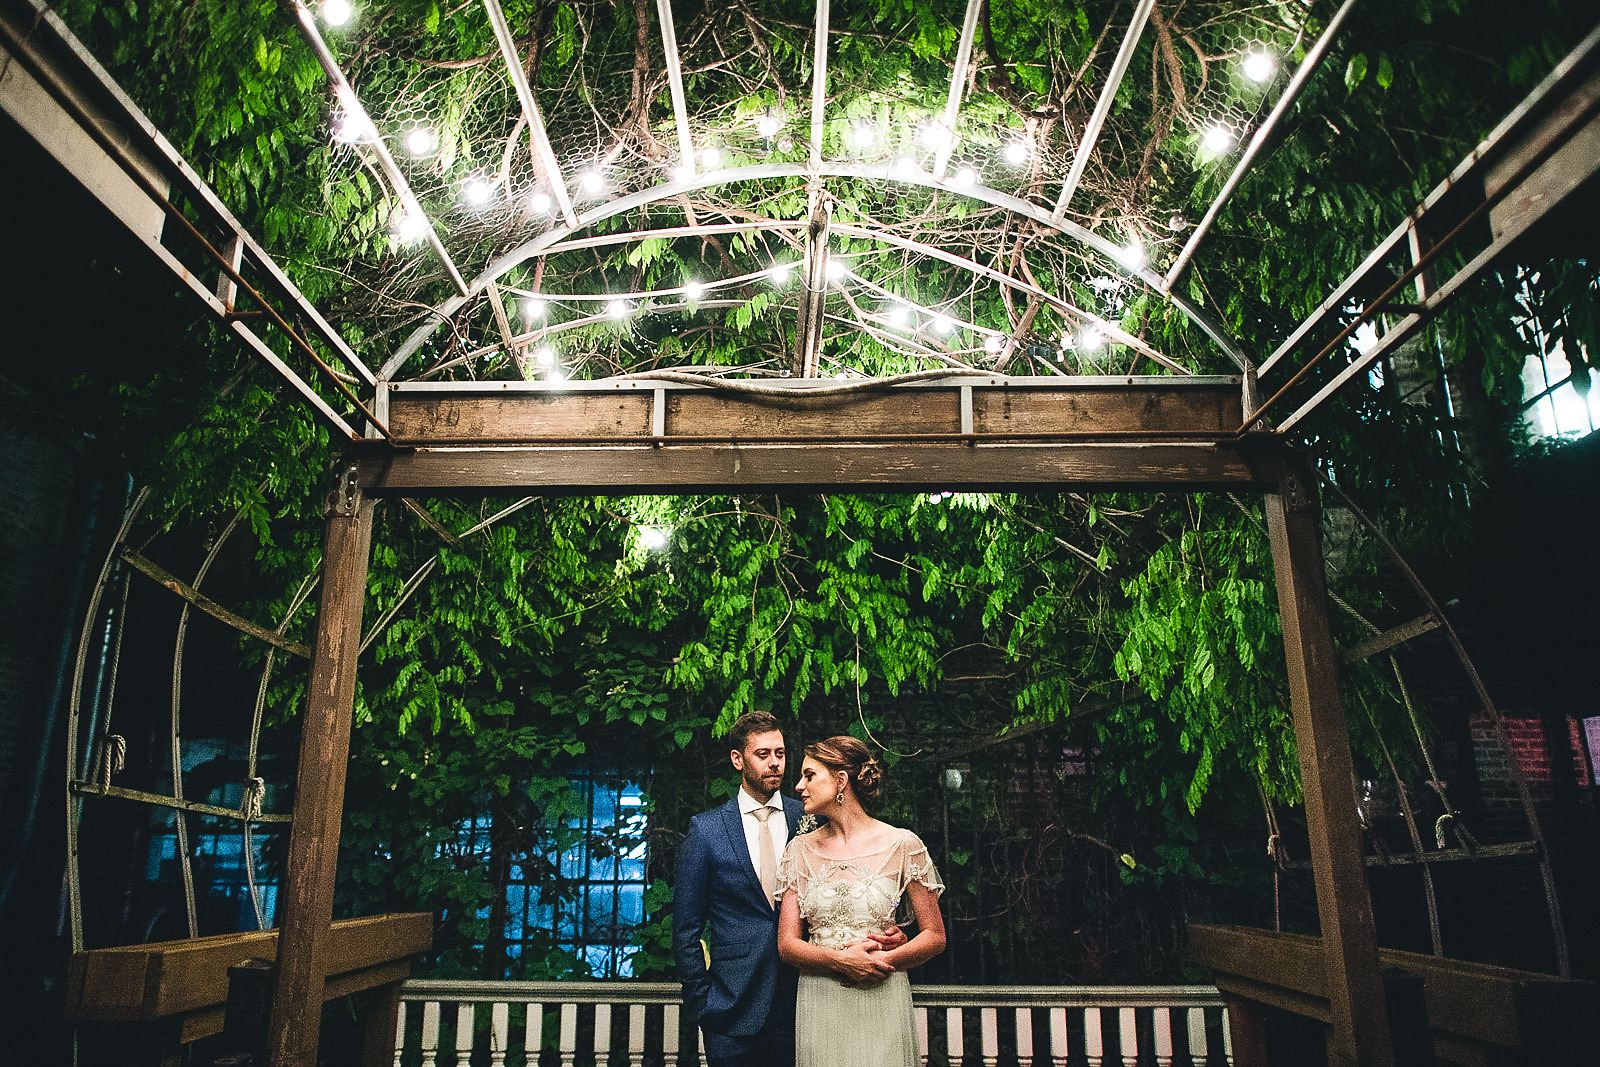 60 night portraits at garden of salvage one - Salvage One Wedding // Pearl + Ken